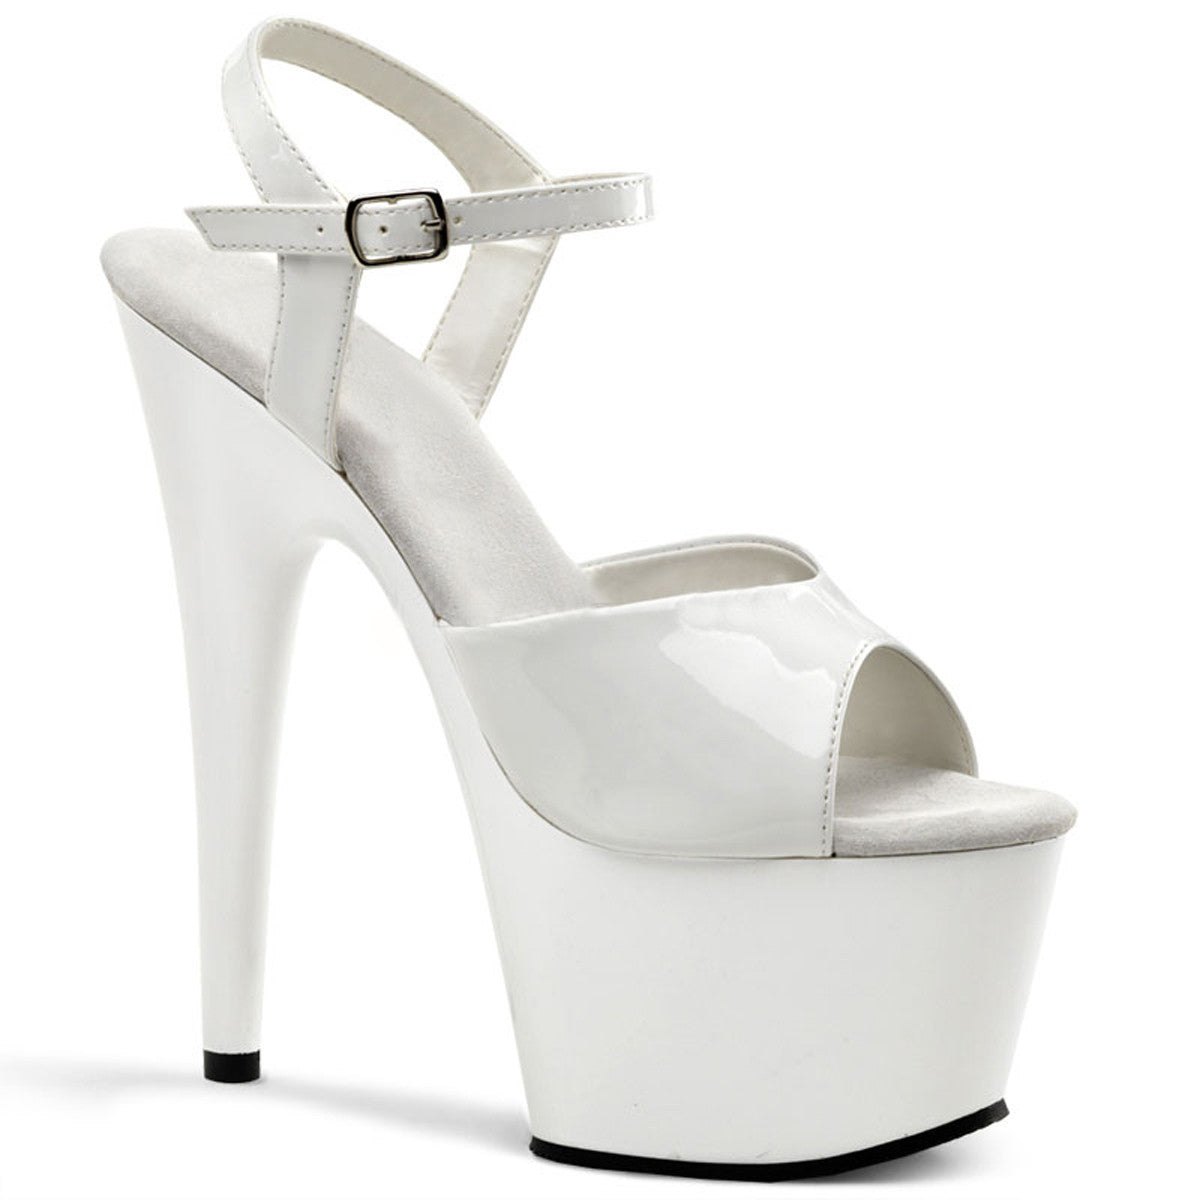 Patent Stiletto Platform Heel with Ankle Strap (Adore 709)